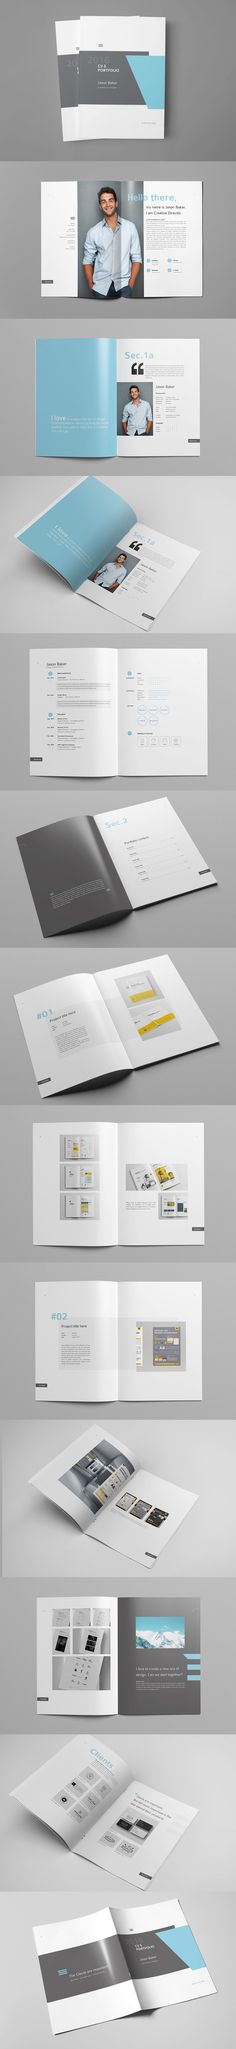 Professional & Creative Multipurpose Portfolio Template AI, EPS, INDD, PSD - 28 Pages, A4 & US letter Size